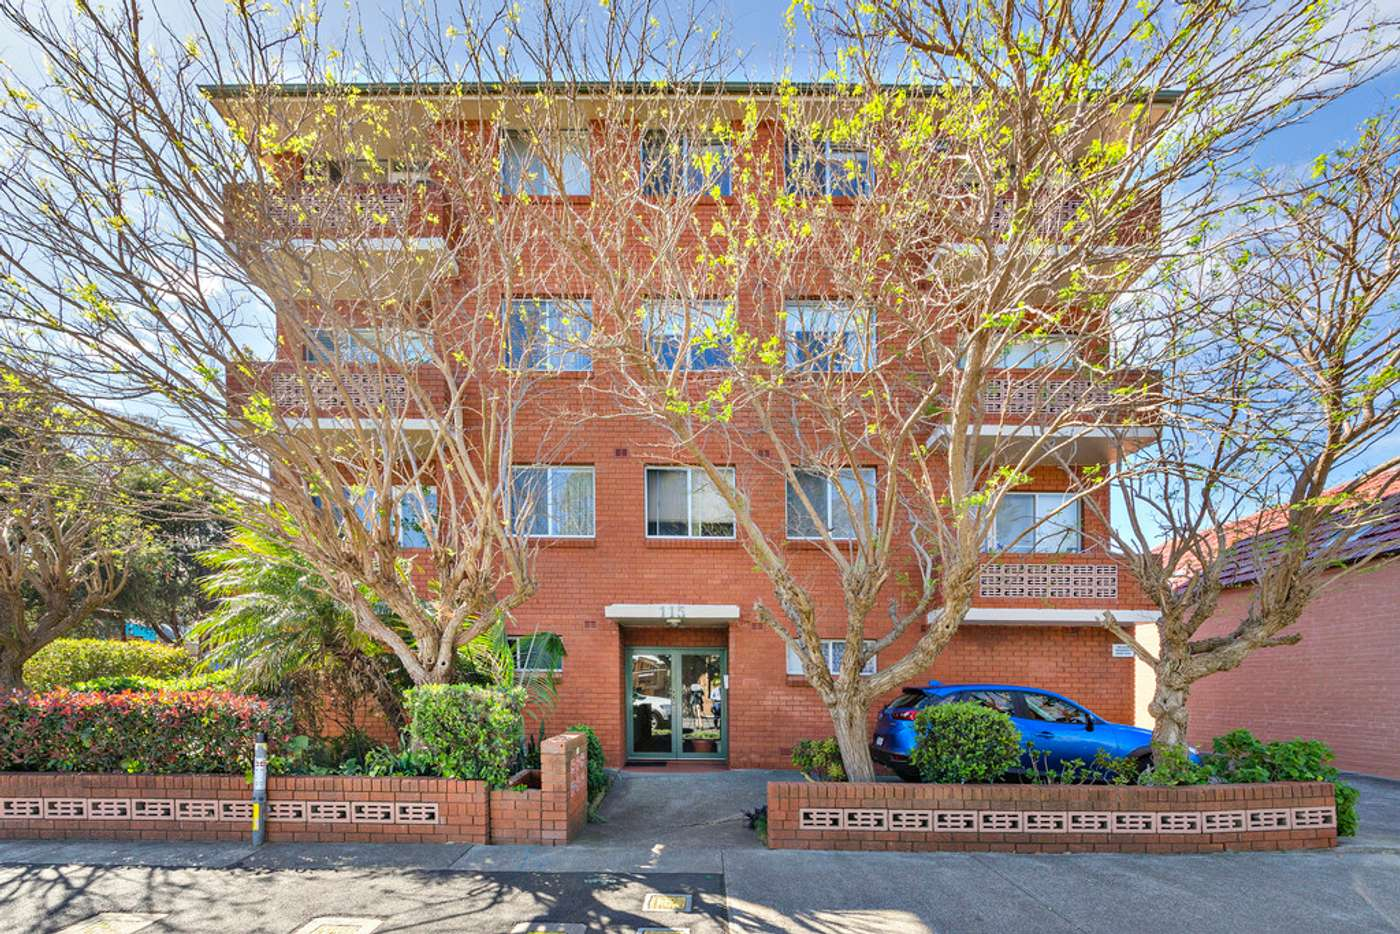 Main view of Homely apartment listing, 1/115 Flood Street., Leichhardt NSW 2040